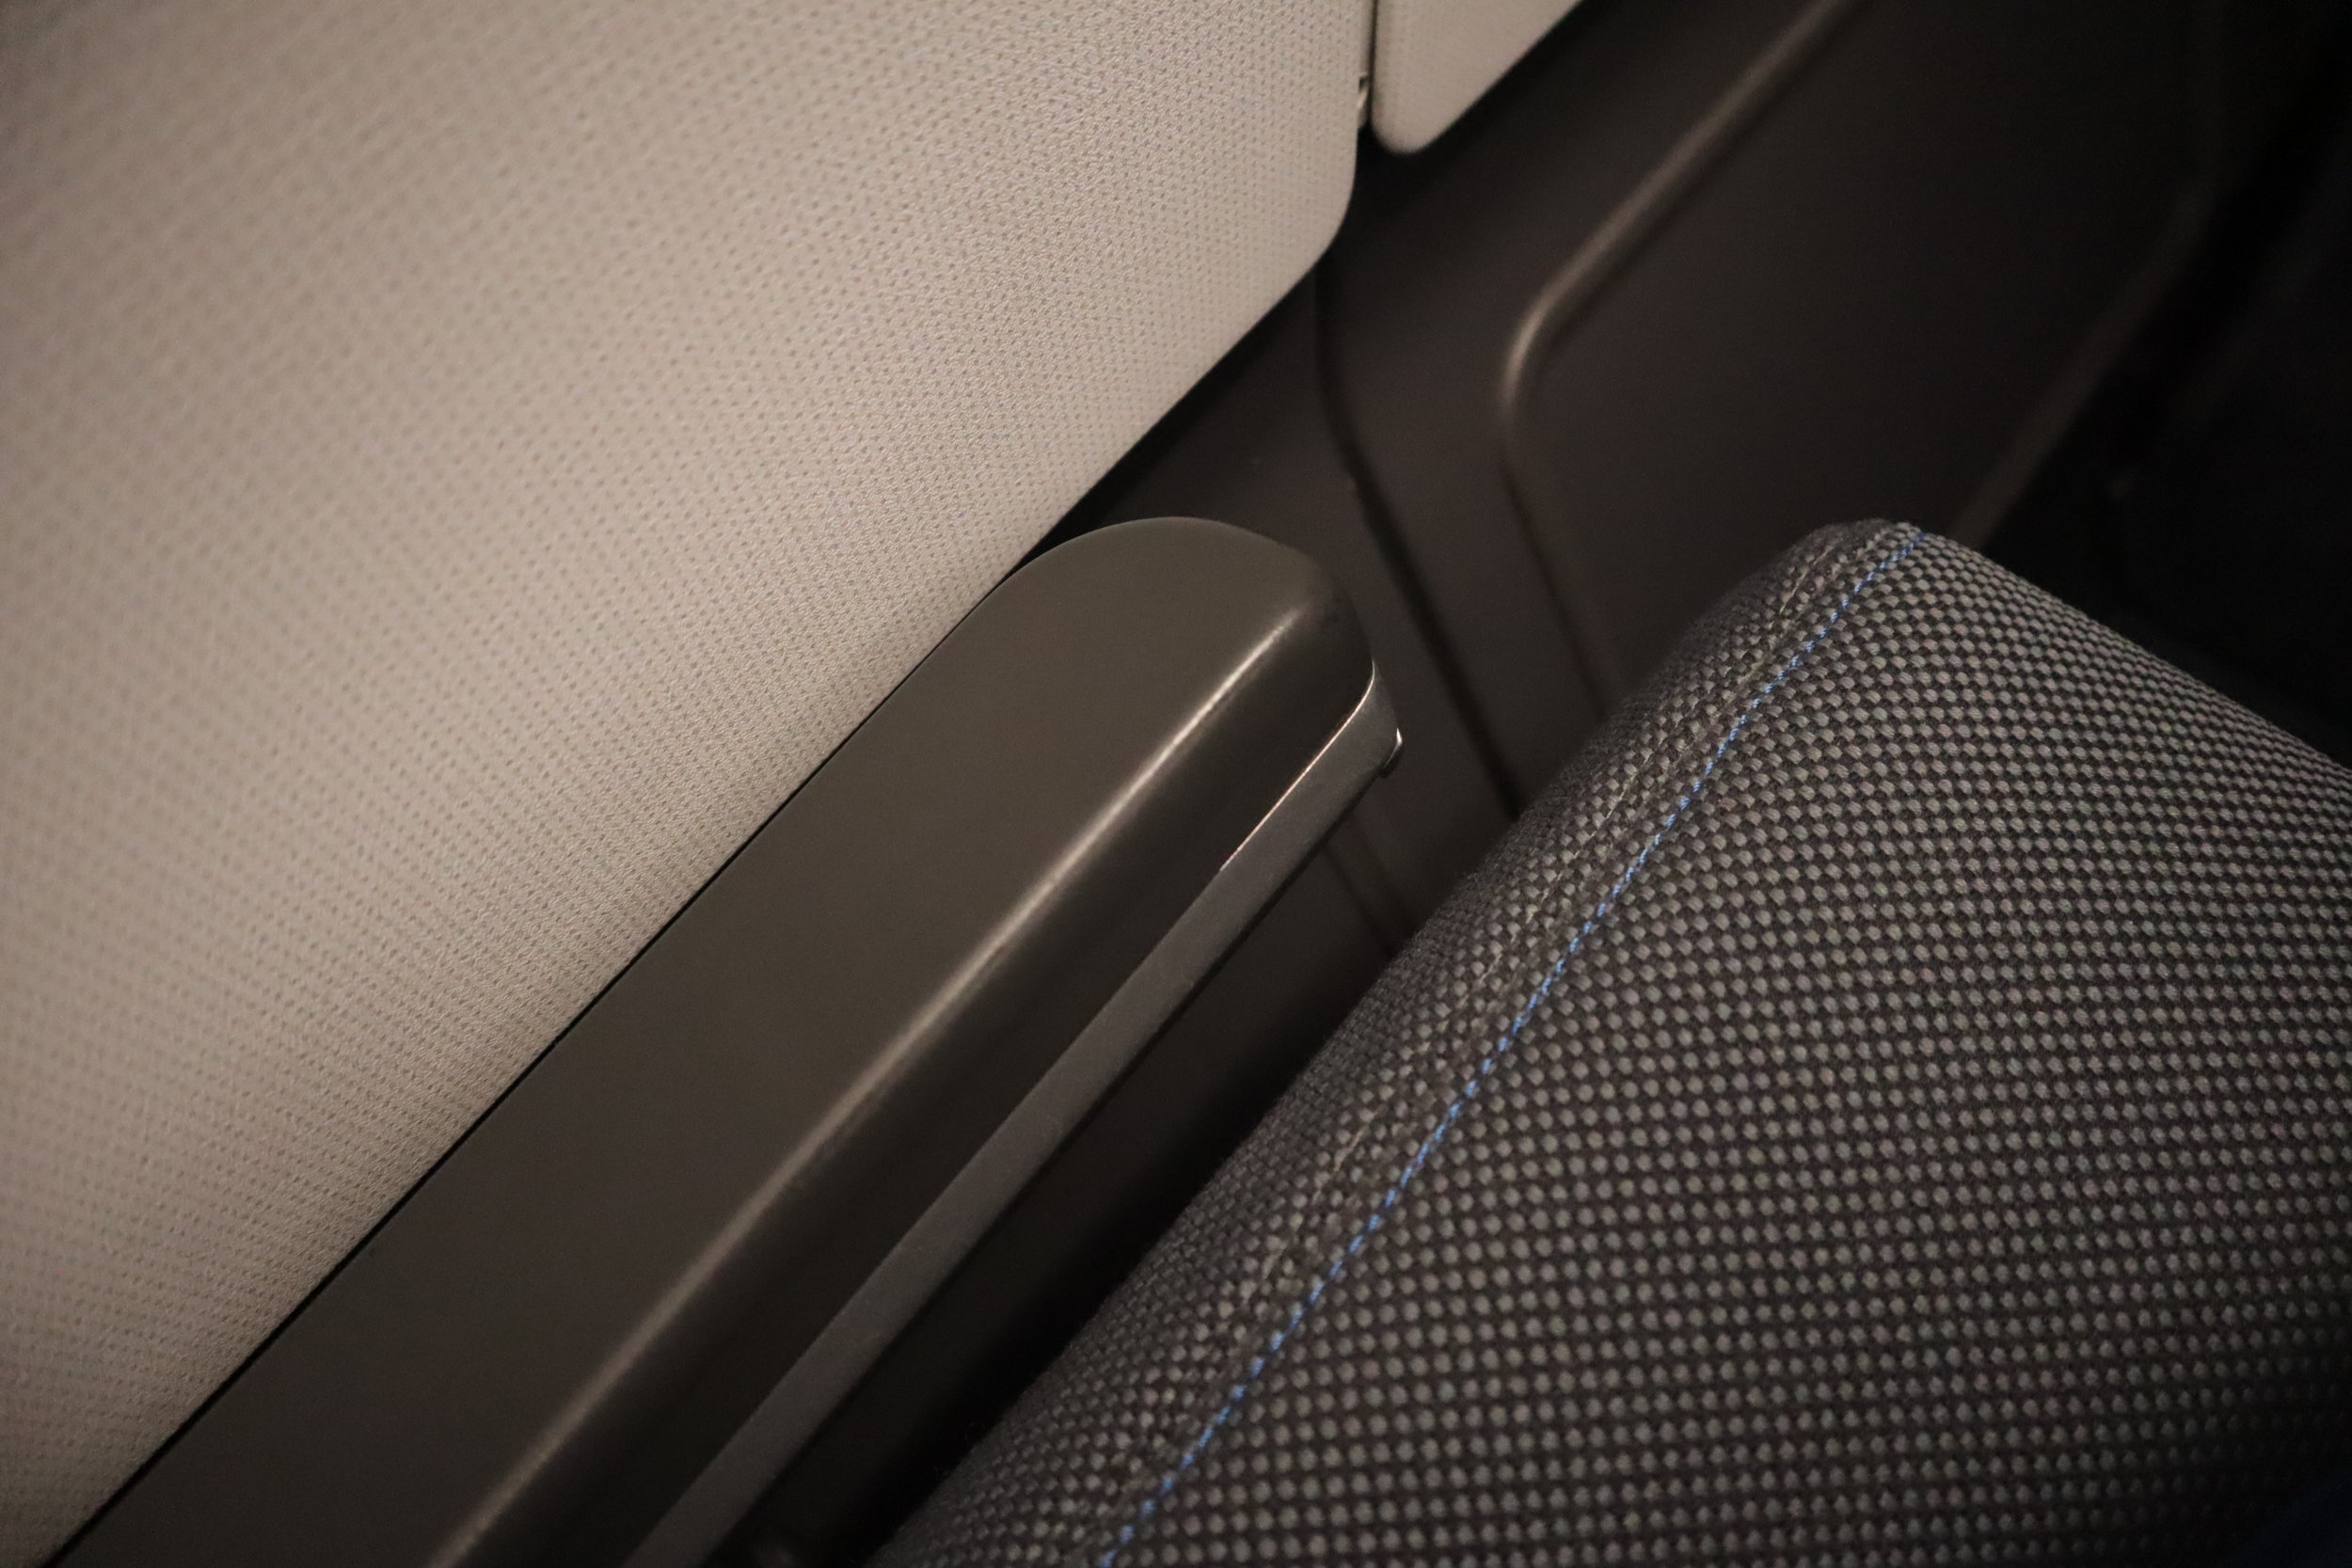 SAS business class – Lowered armrest